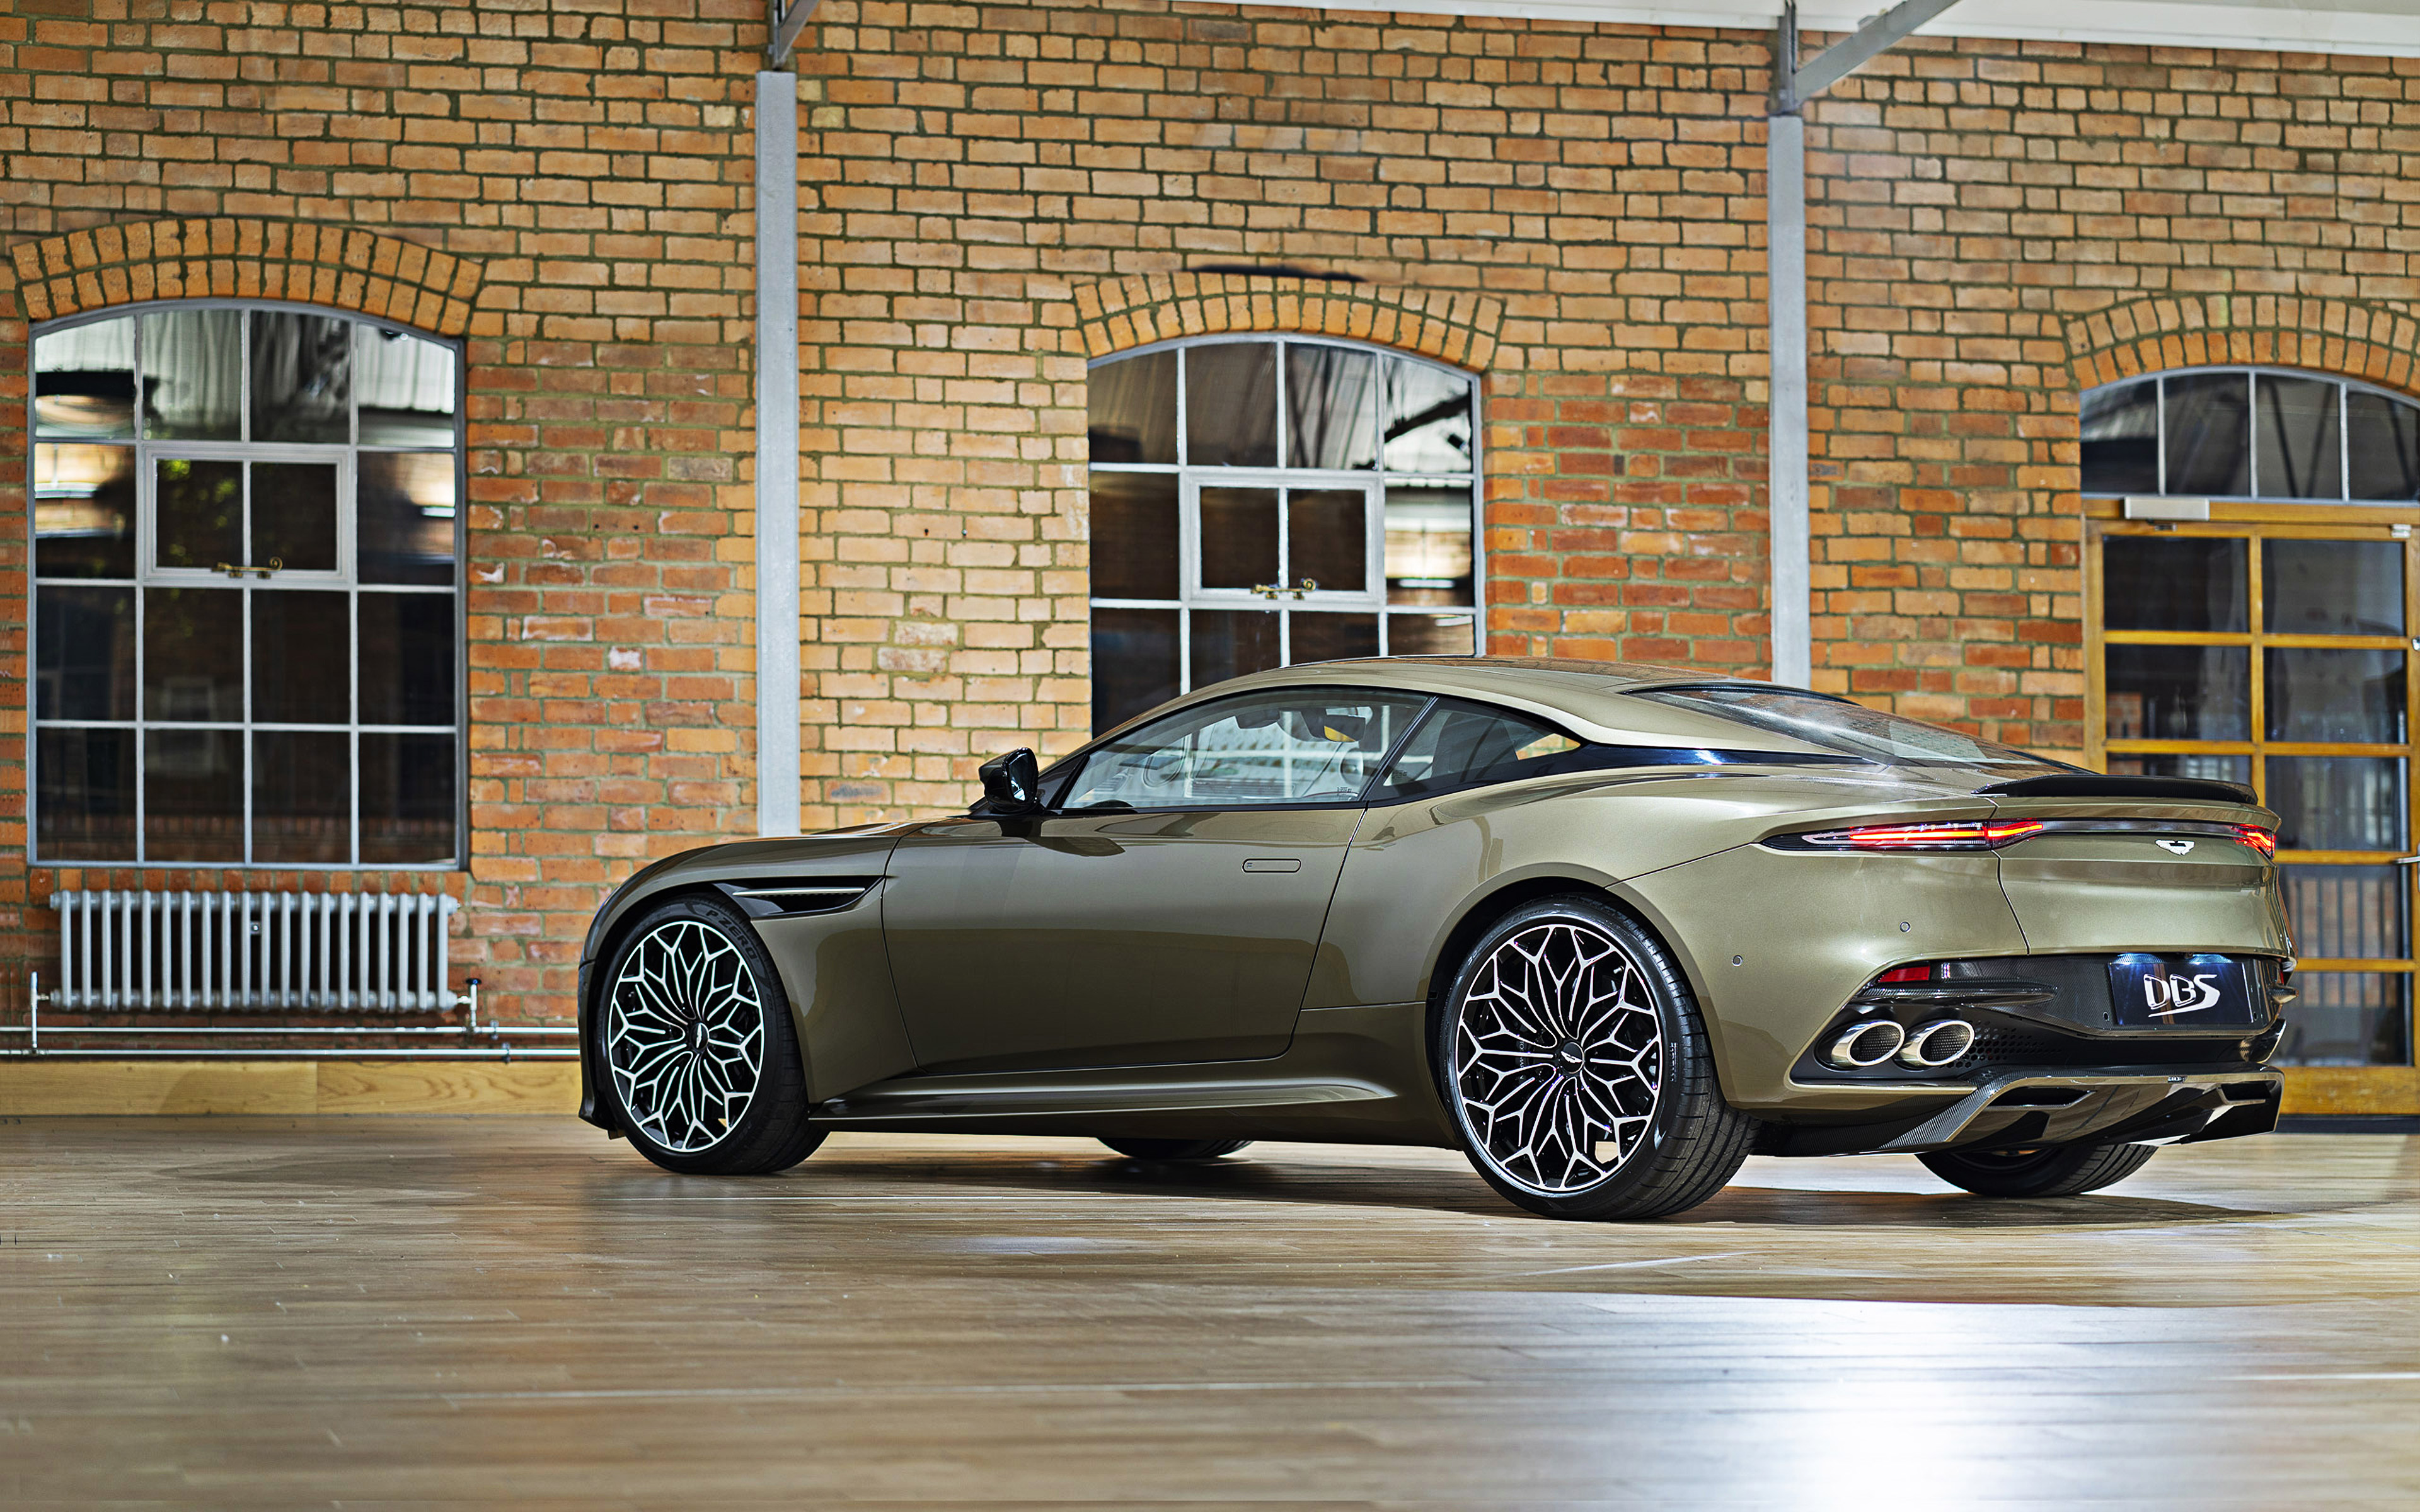 2019, aston martin dbs superleggera, ohmss edition, hinten, außen, luxus supersportwagen, sport-coupé, british sports cars, aston martin